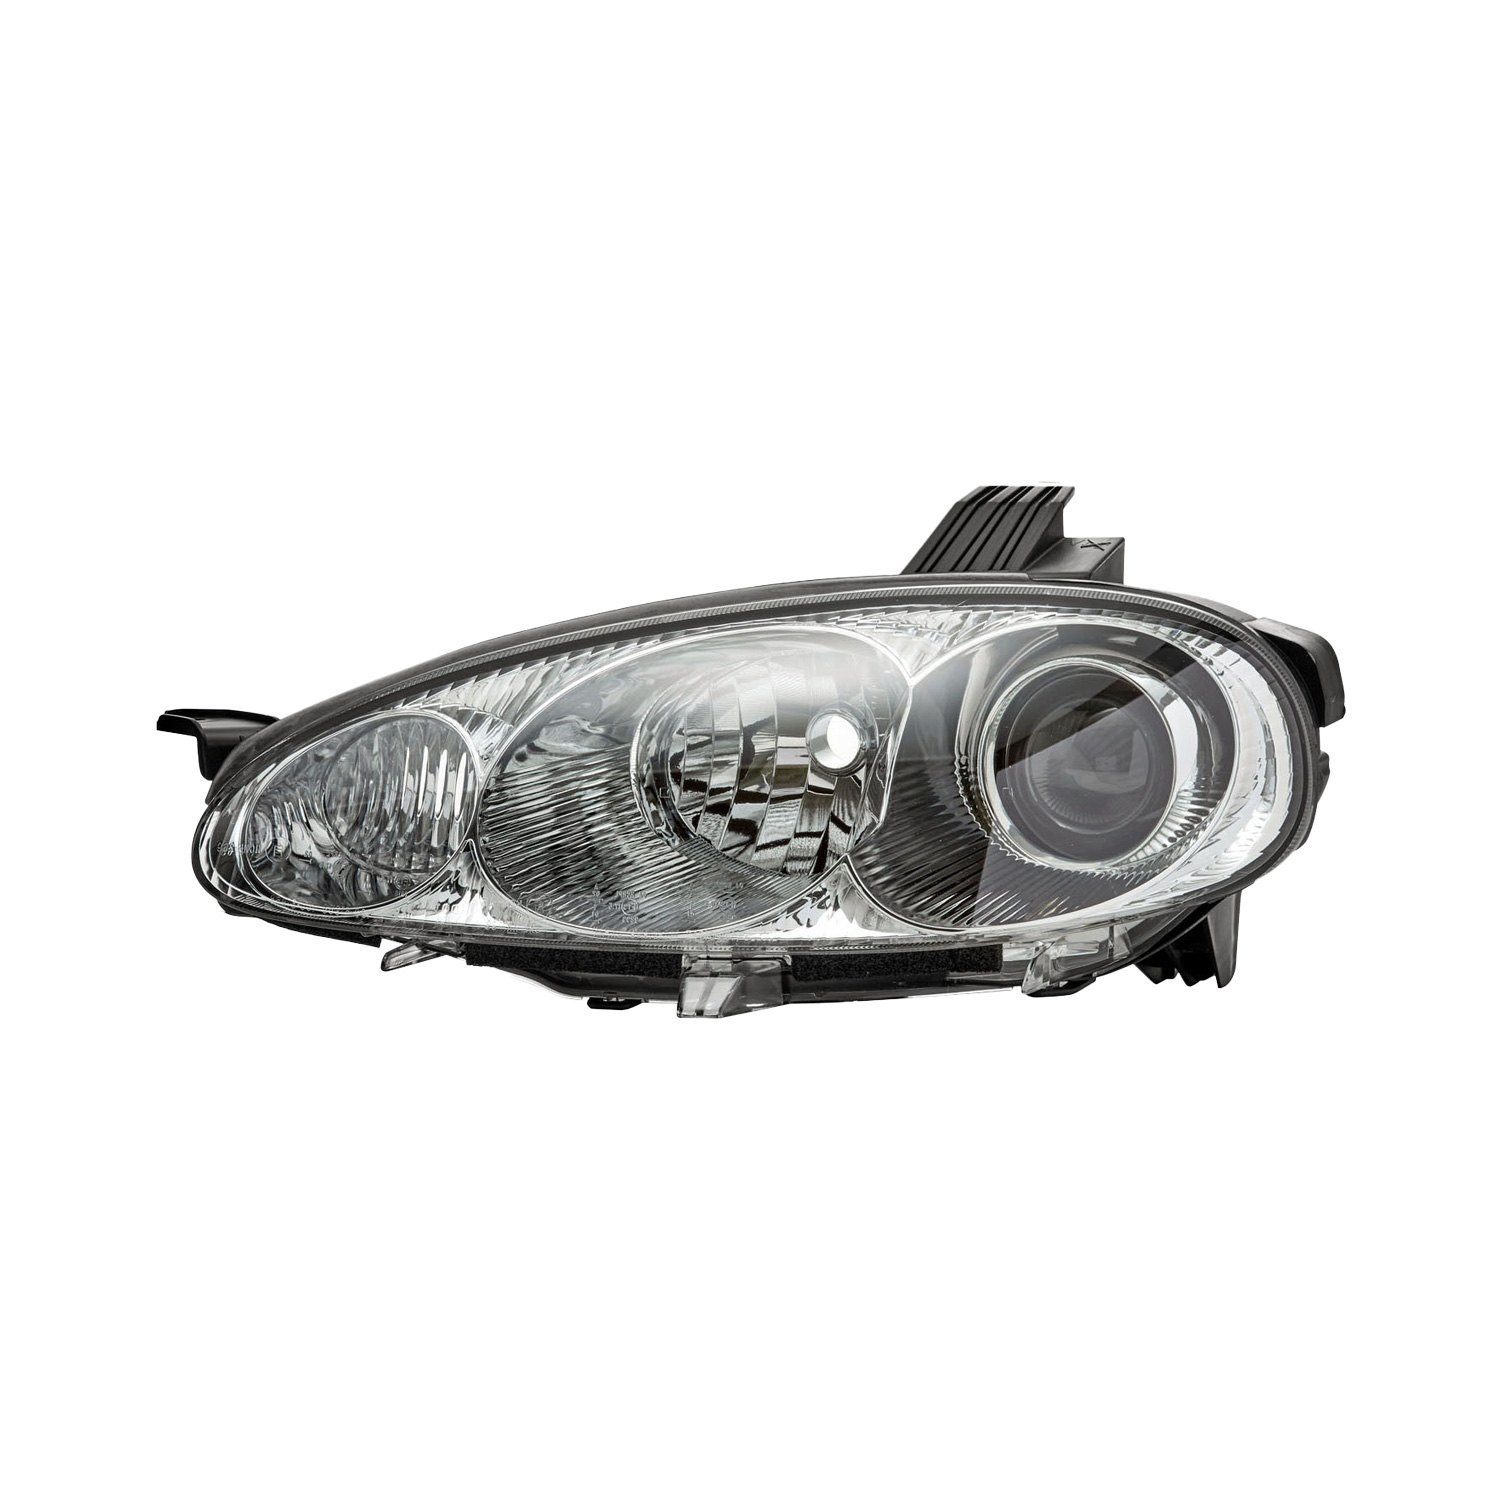 Mazda Miata 2003 Tyc Nc72 51 0l0d Driver Side Replacement Headlight Ebay